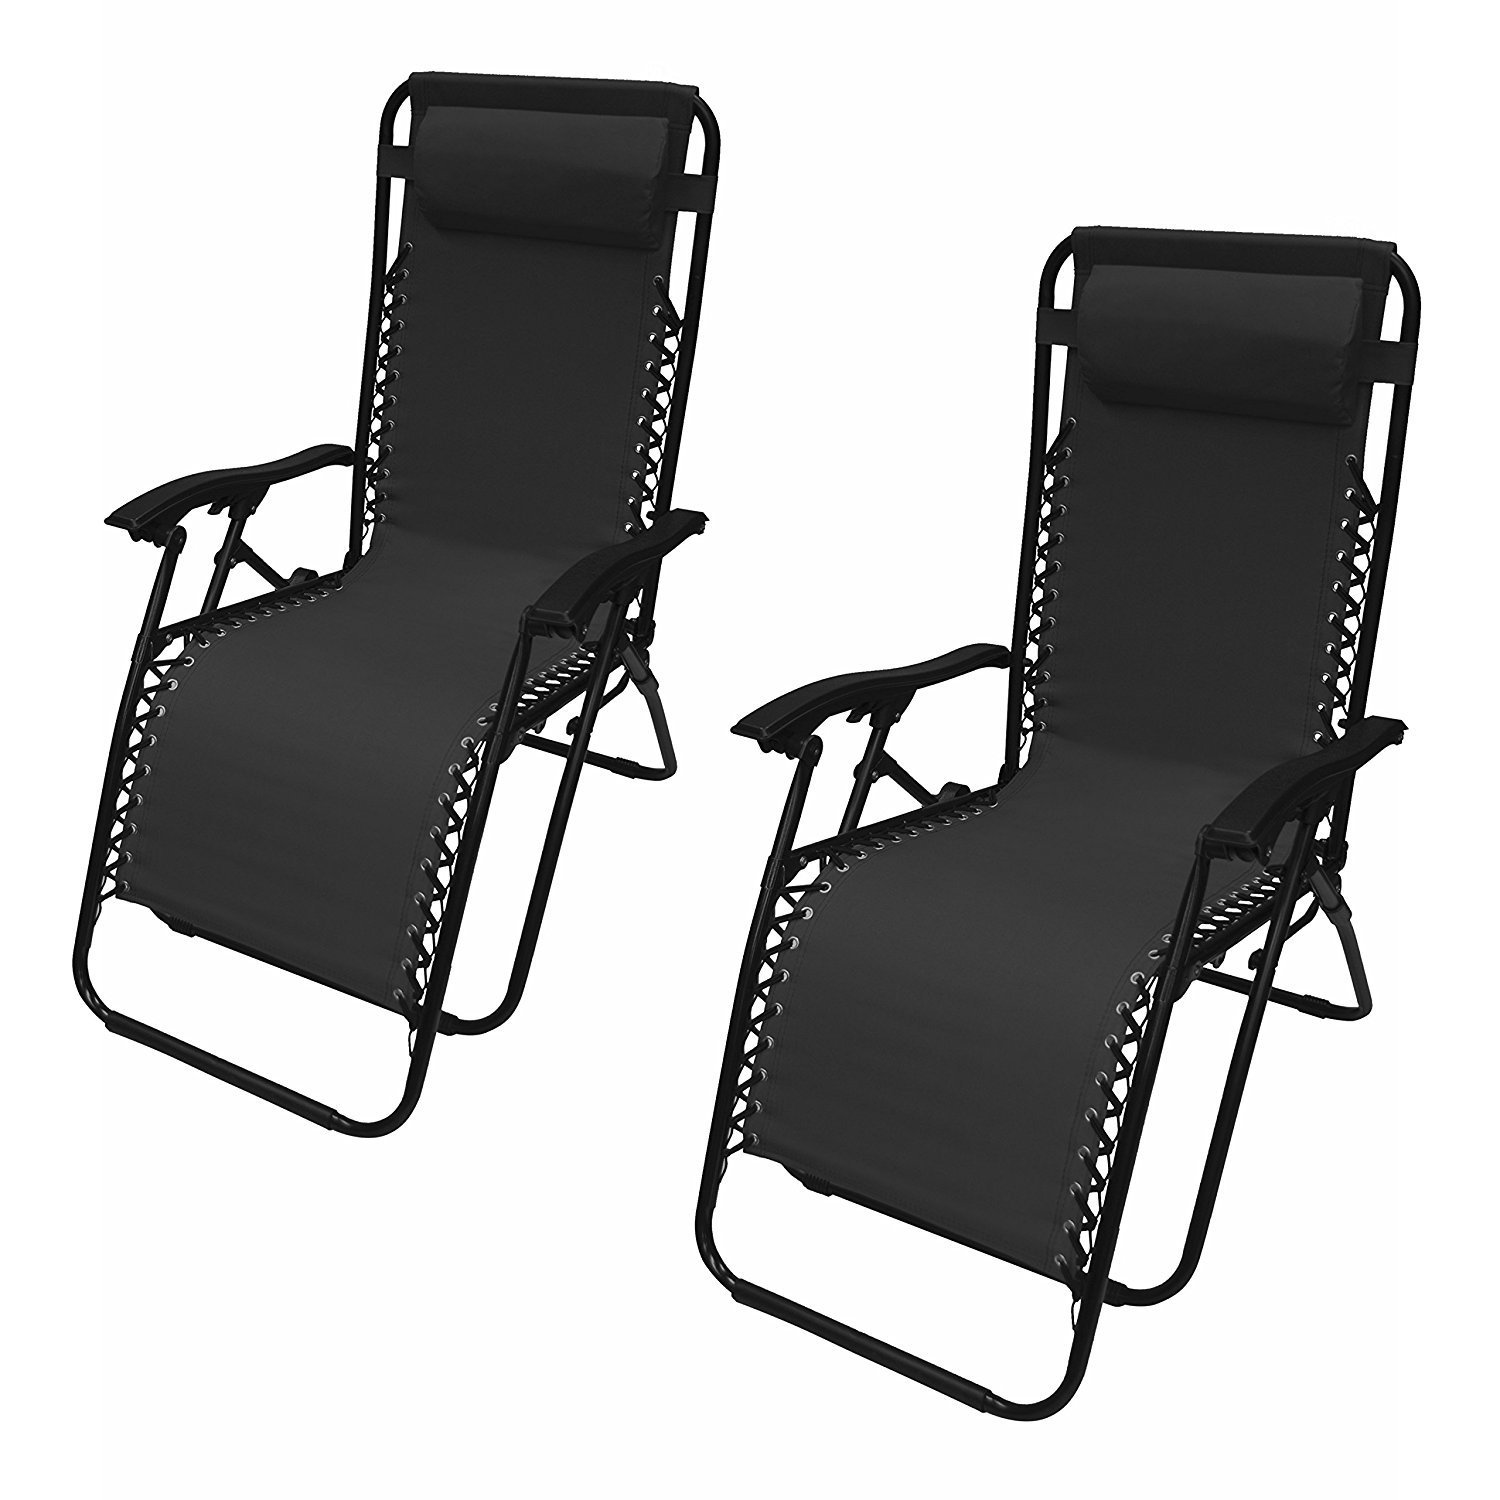 Aleko Patio Foldable 25x64.5x44 inch Chaise-Longue Chairs...